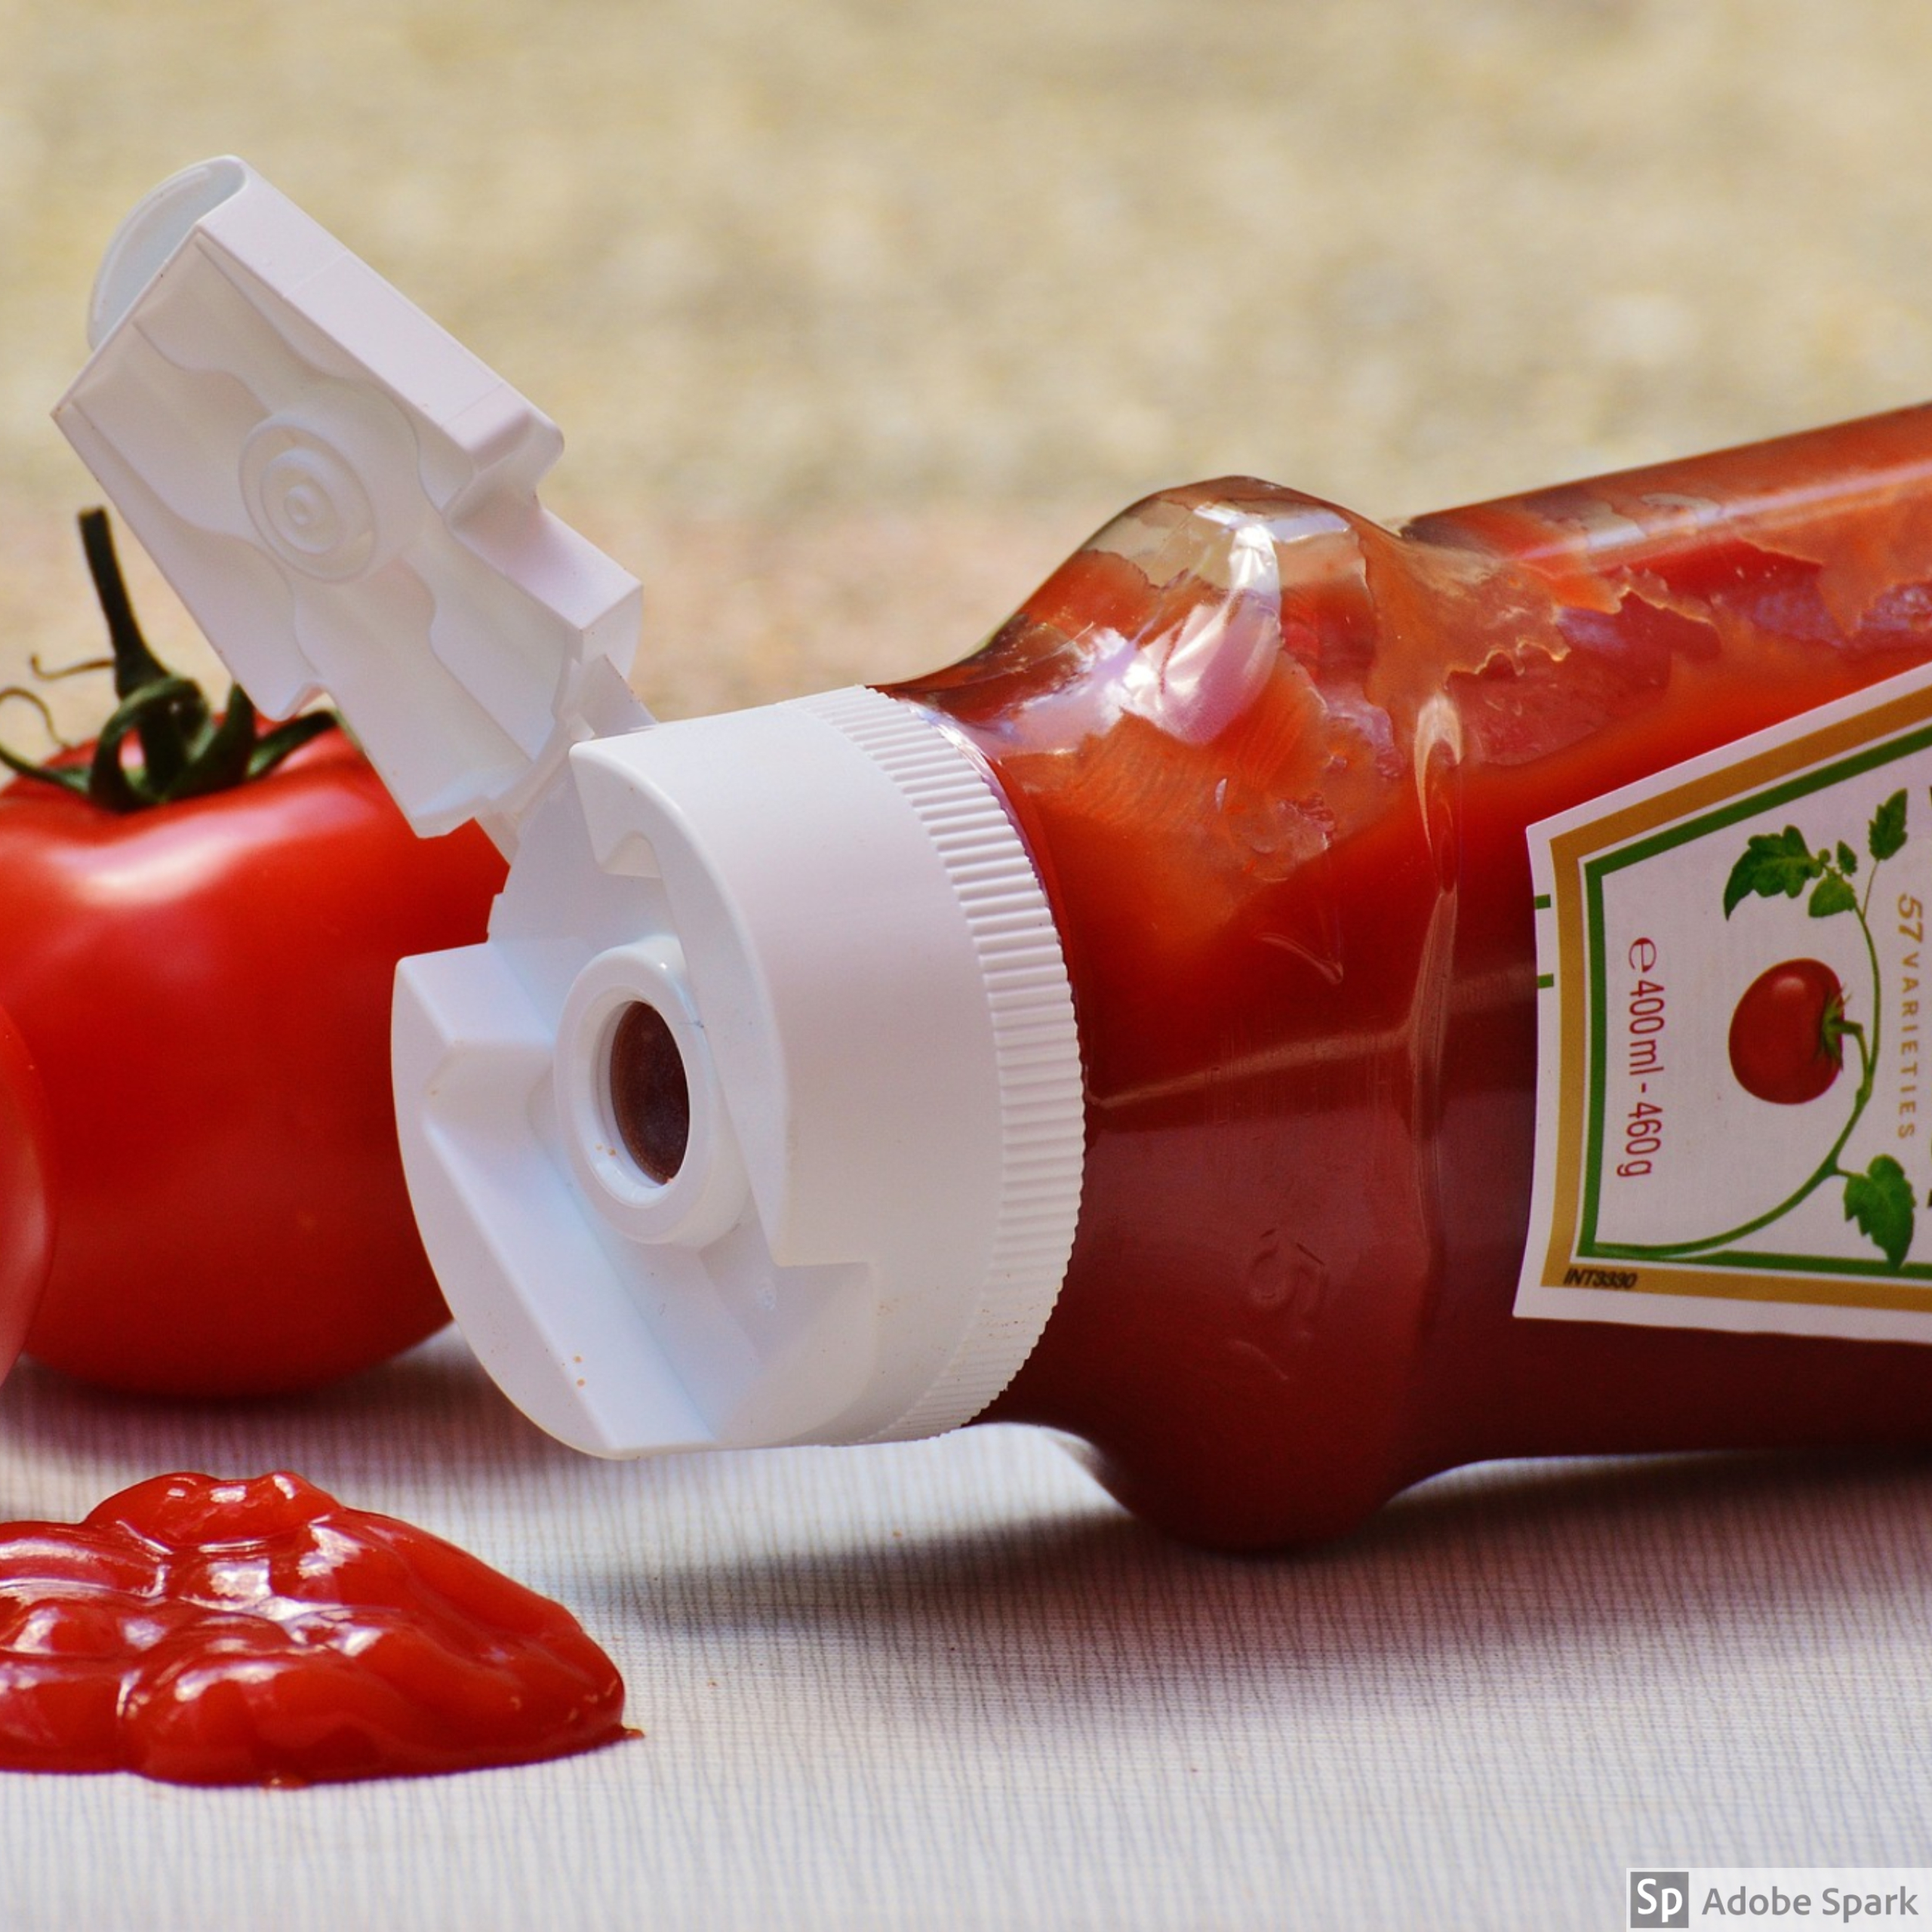 The Ketchup Bottle